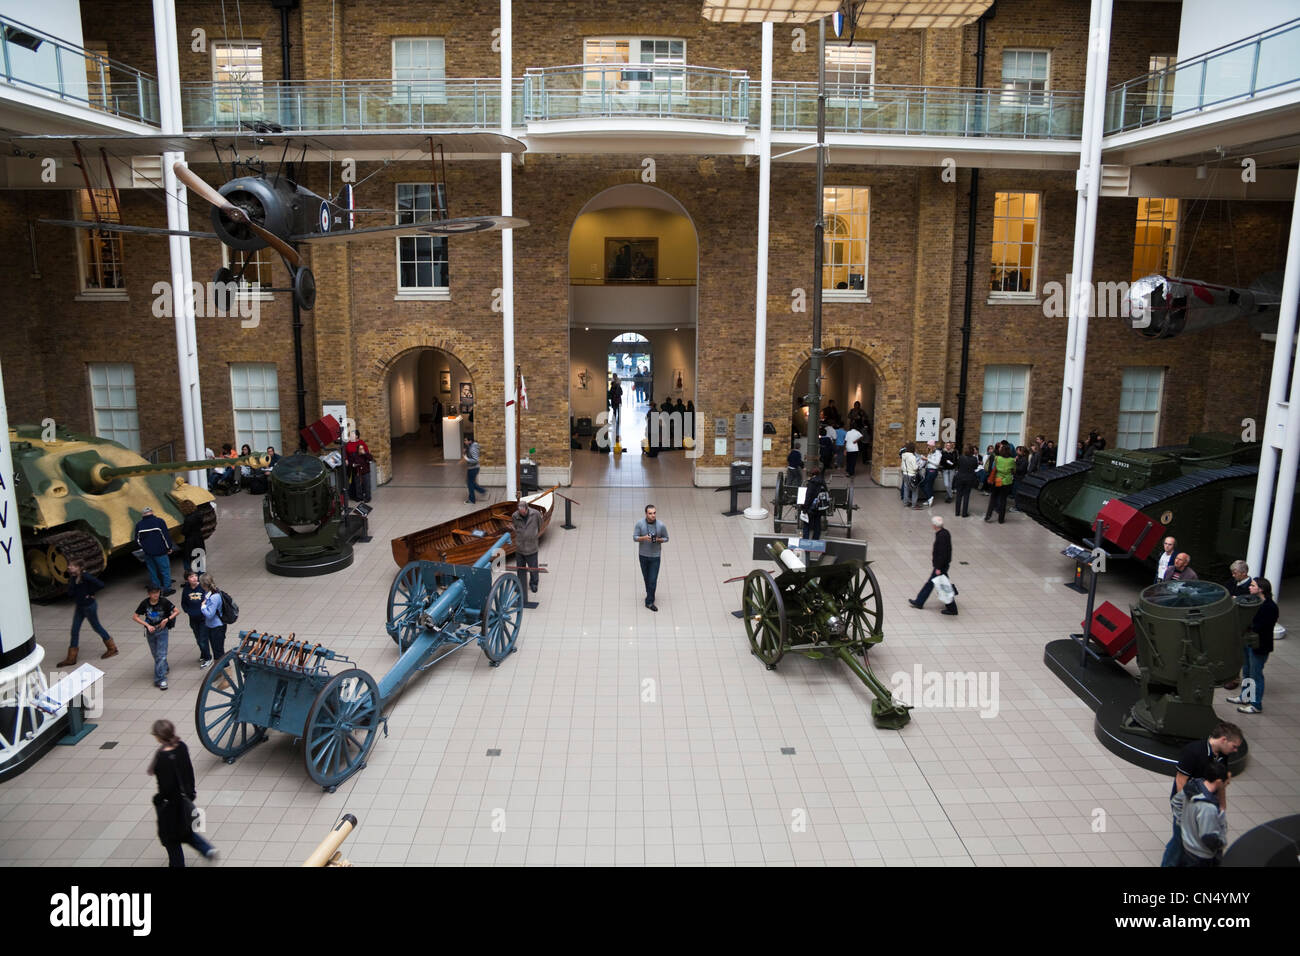 Inside the Imperial War Museum, London, UK - Stock Image